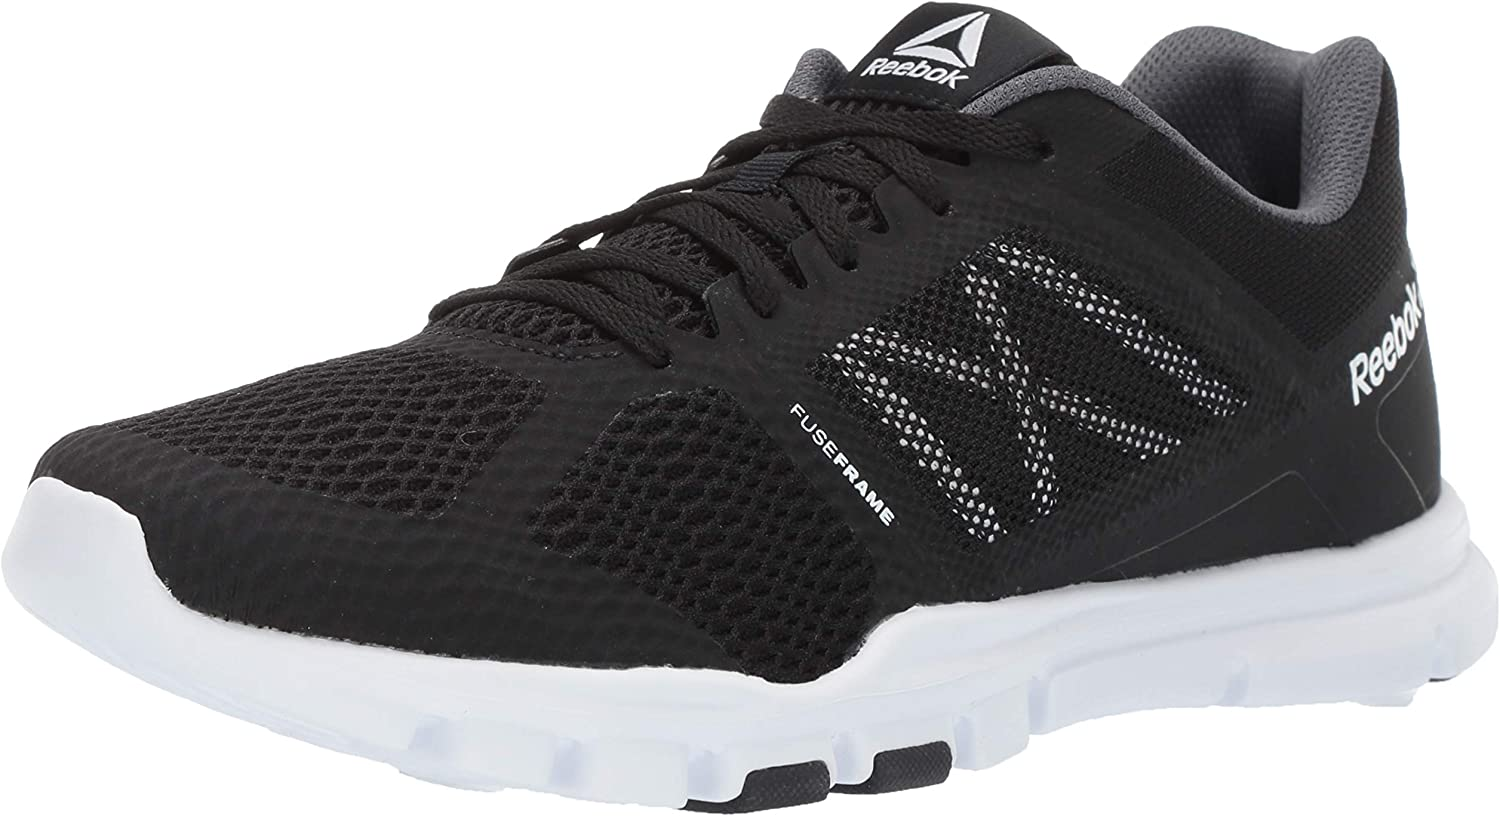 Reebok - Yourflex Train 11 Mt Herren